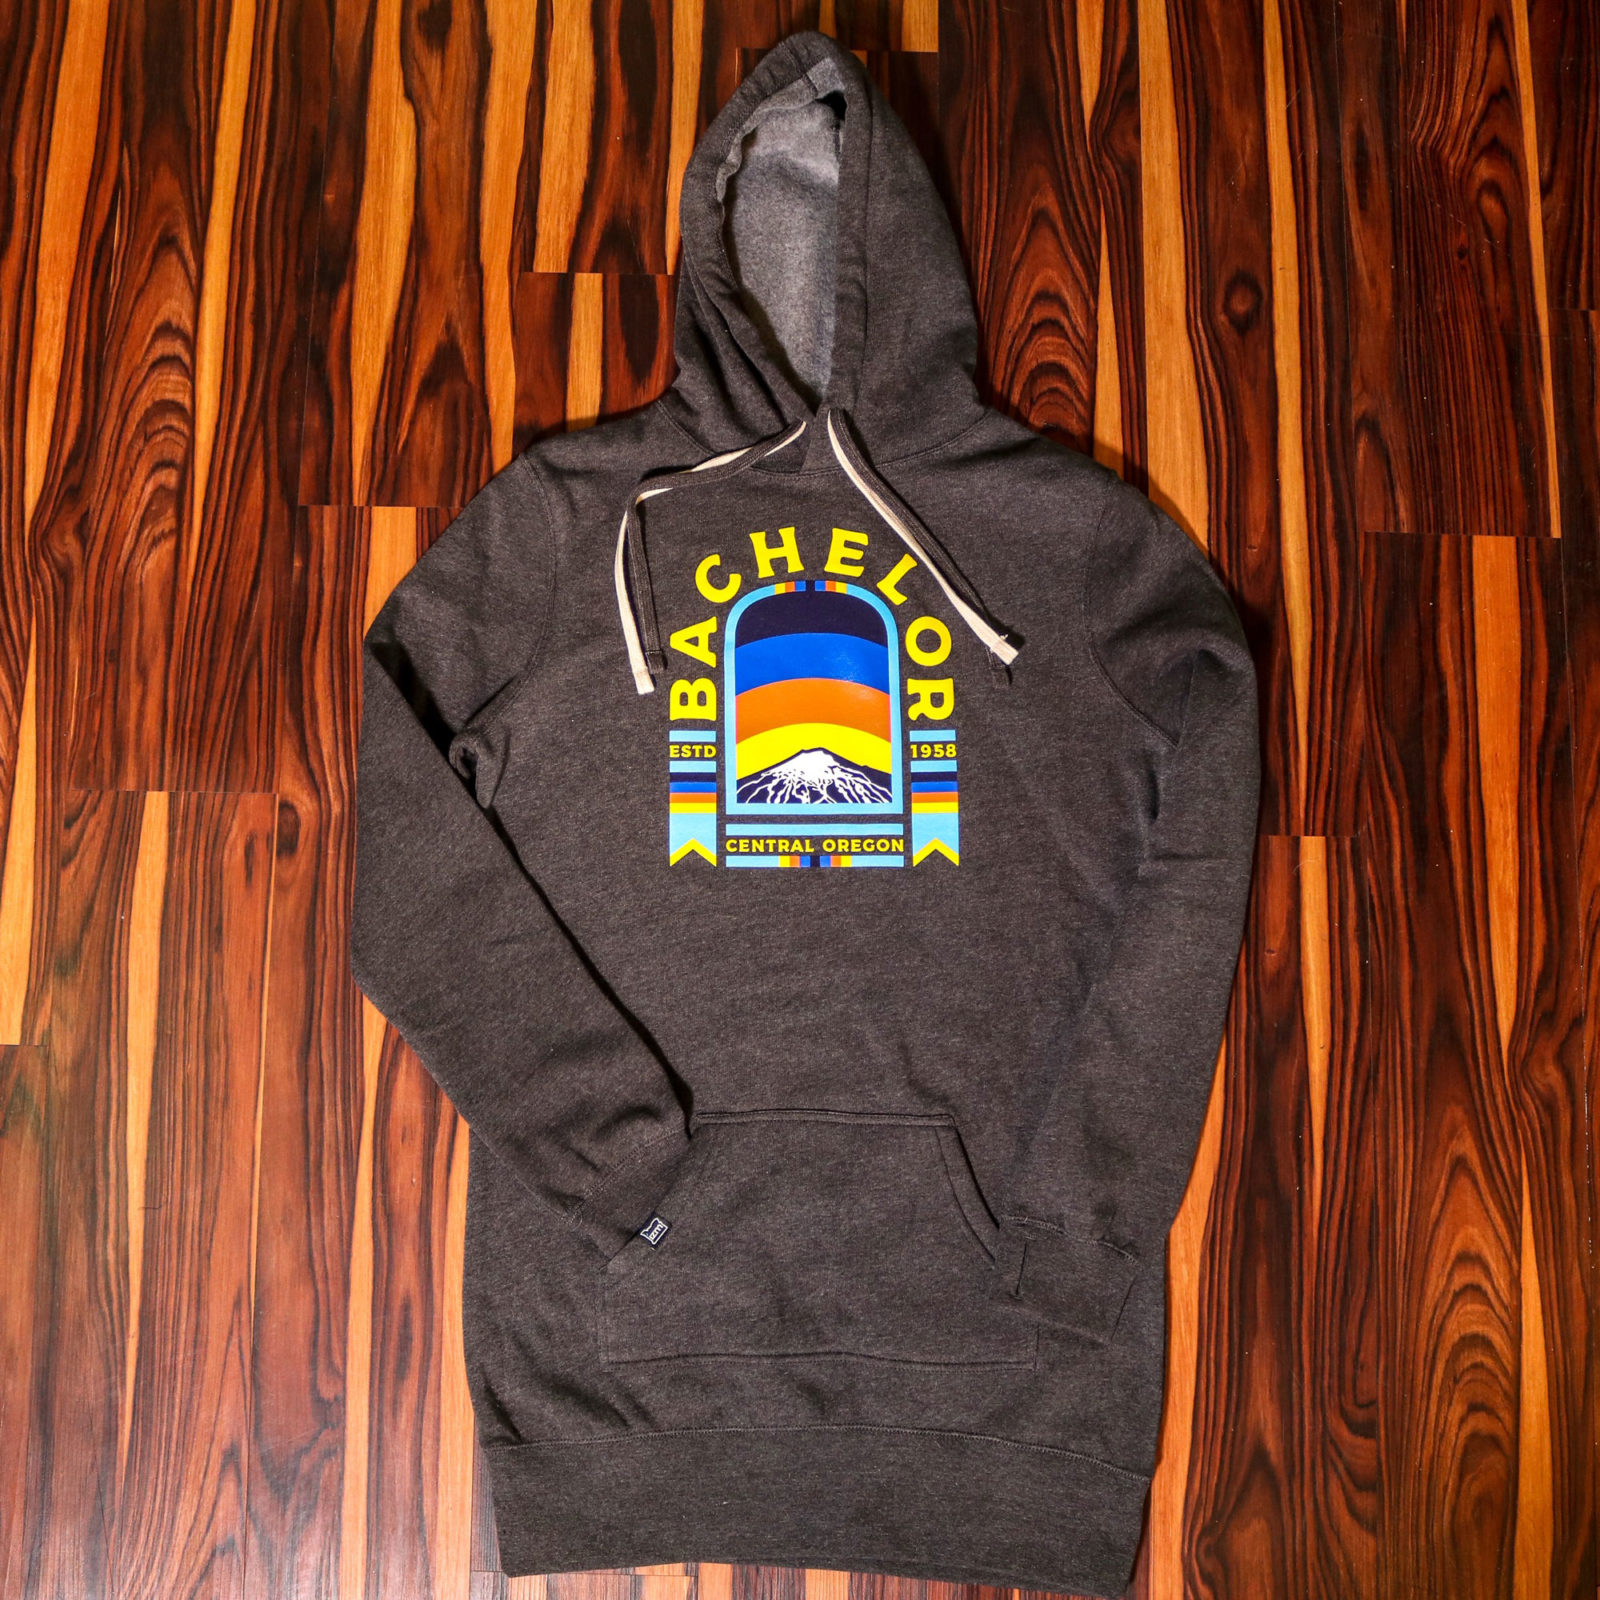 izm-productimages-hoodie-bachelor-charcoal-1